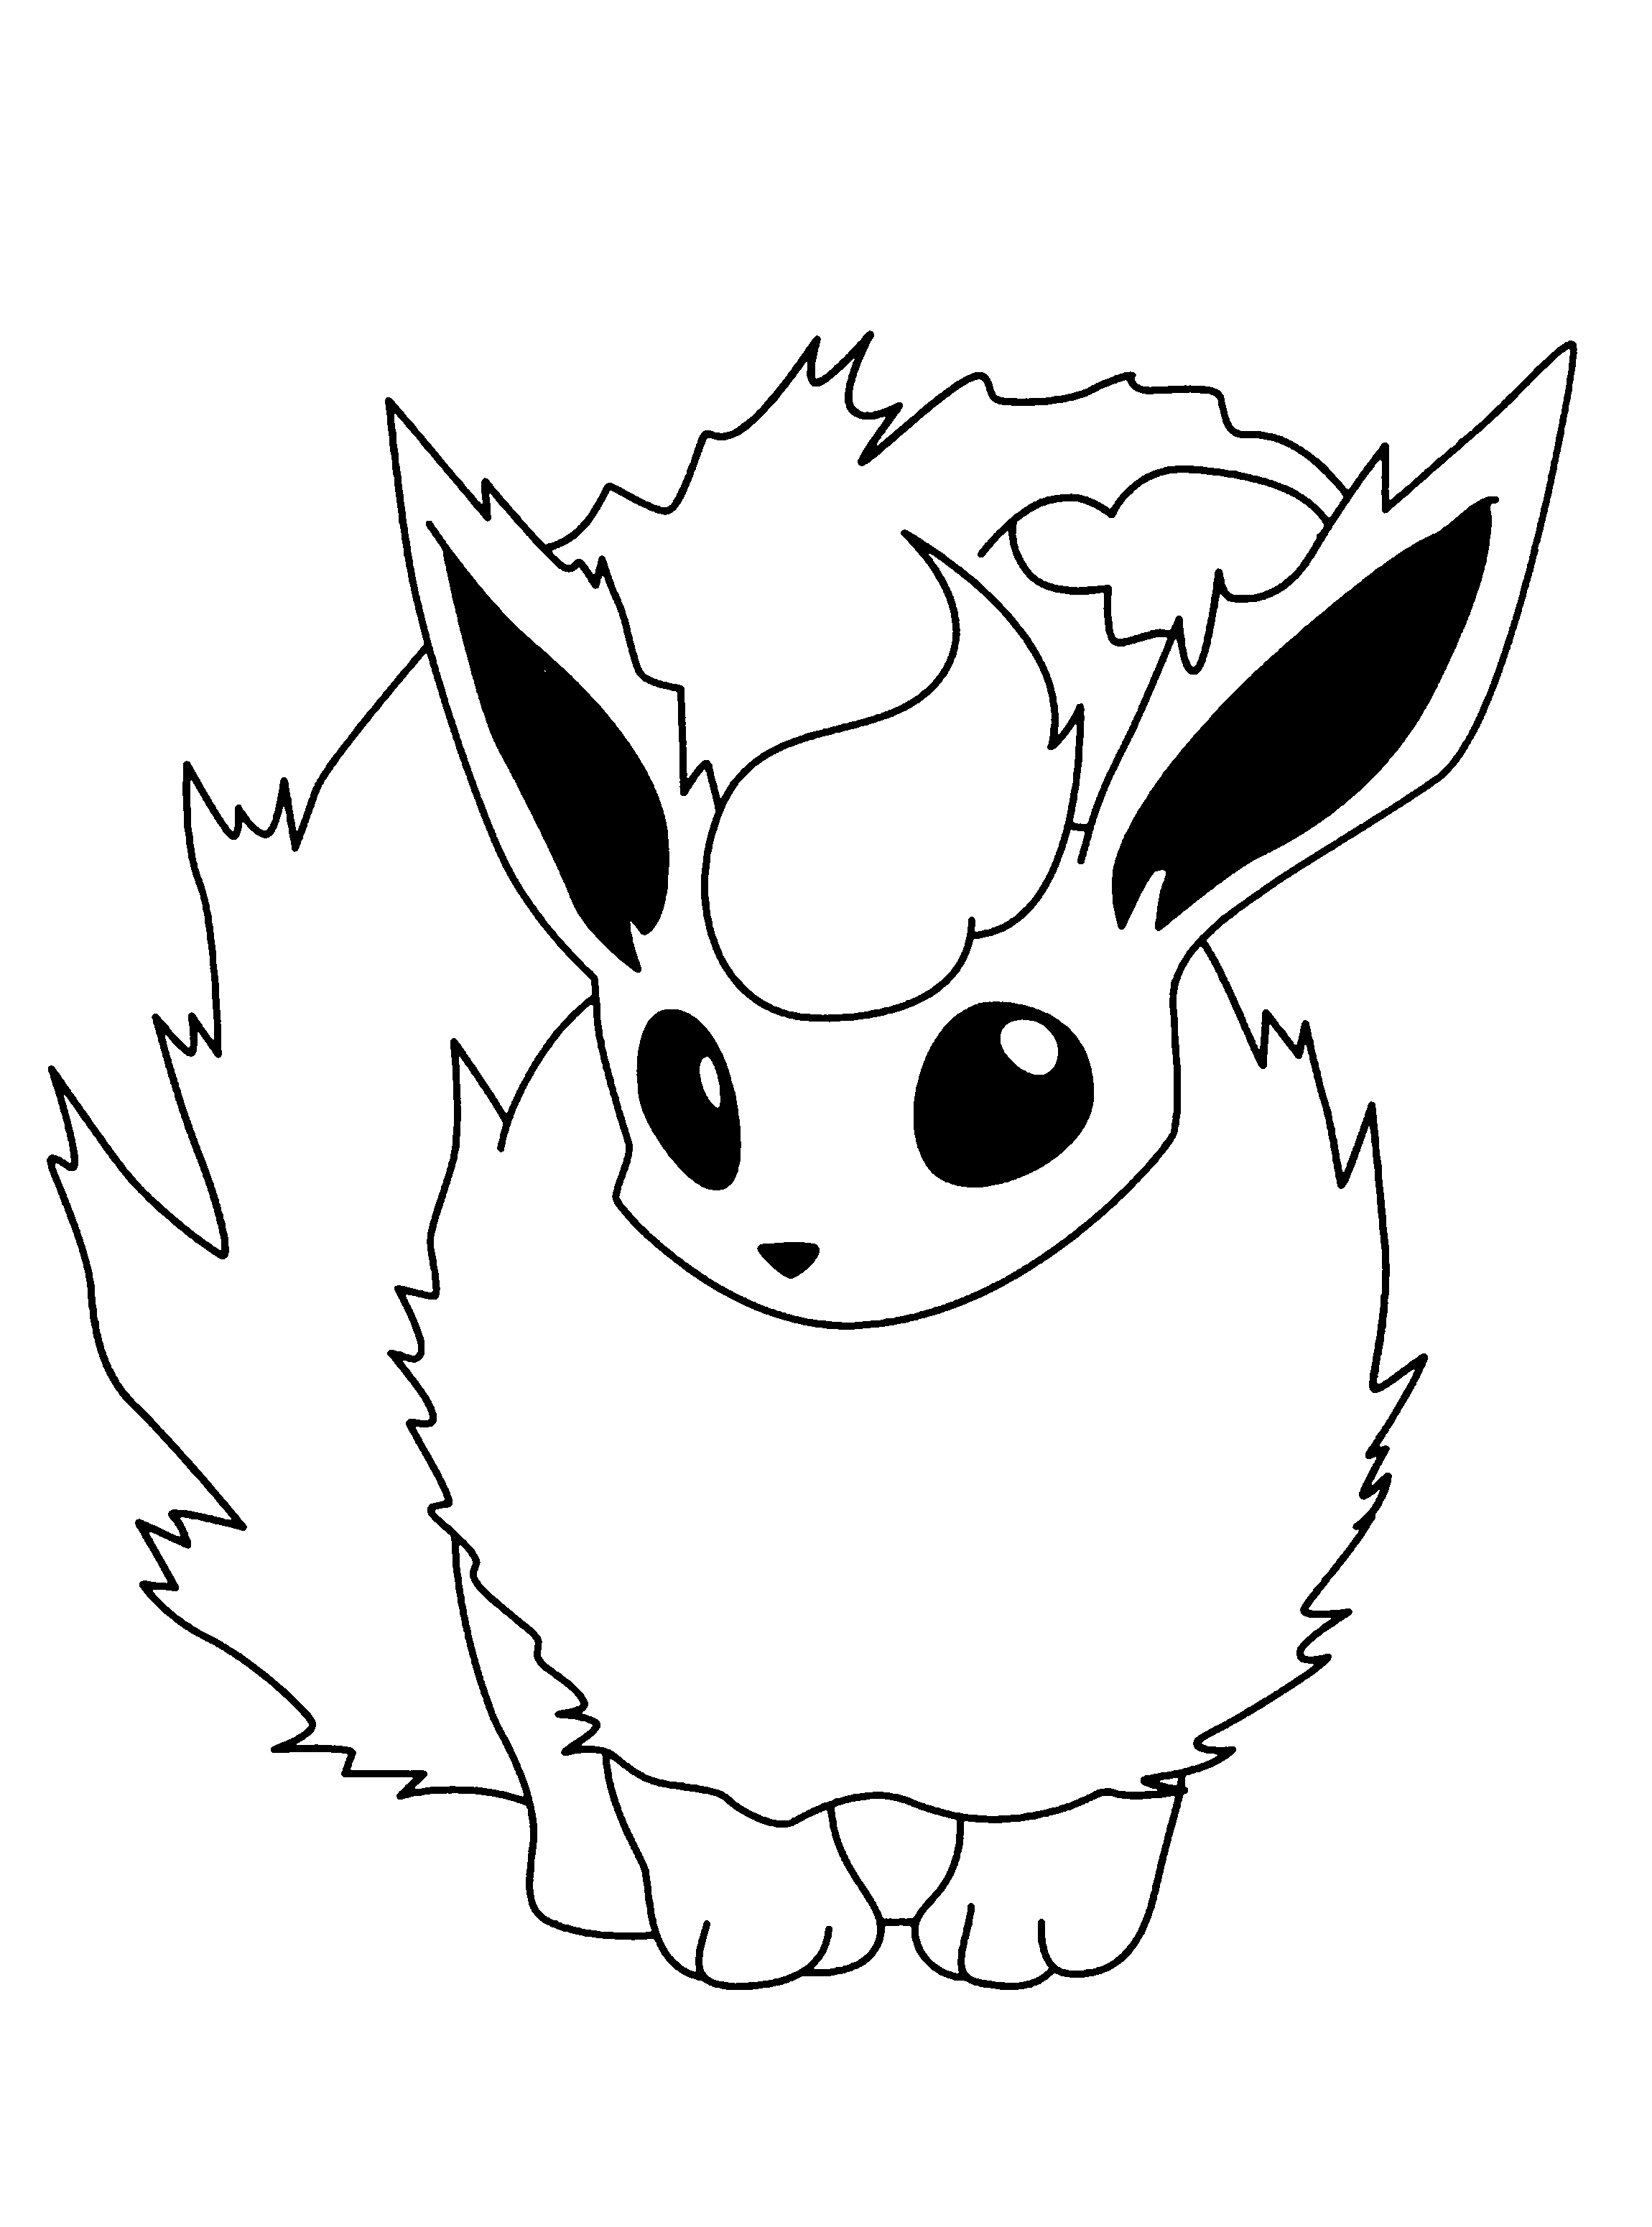 Pokemon coloring pages download pokemon images and print for All pokemon coloring pages